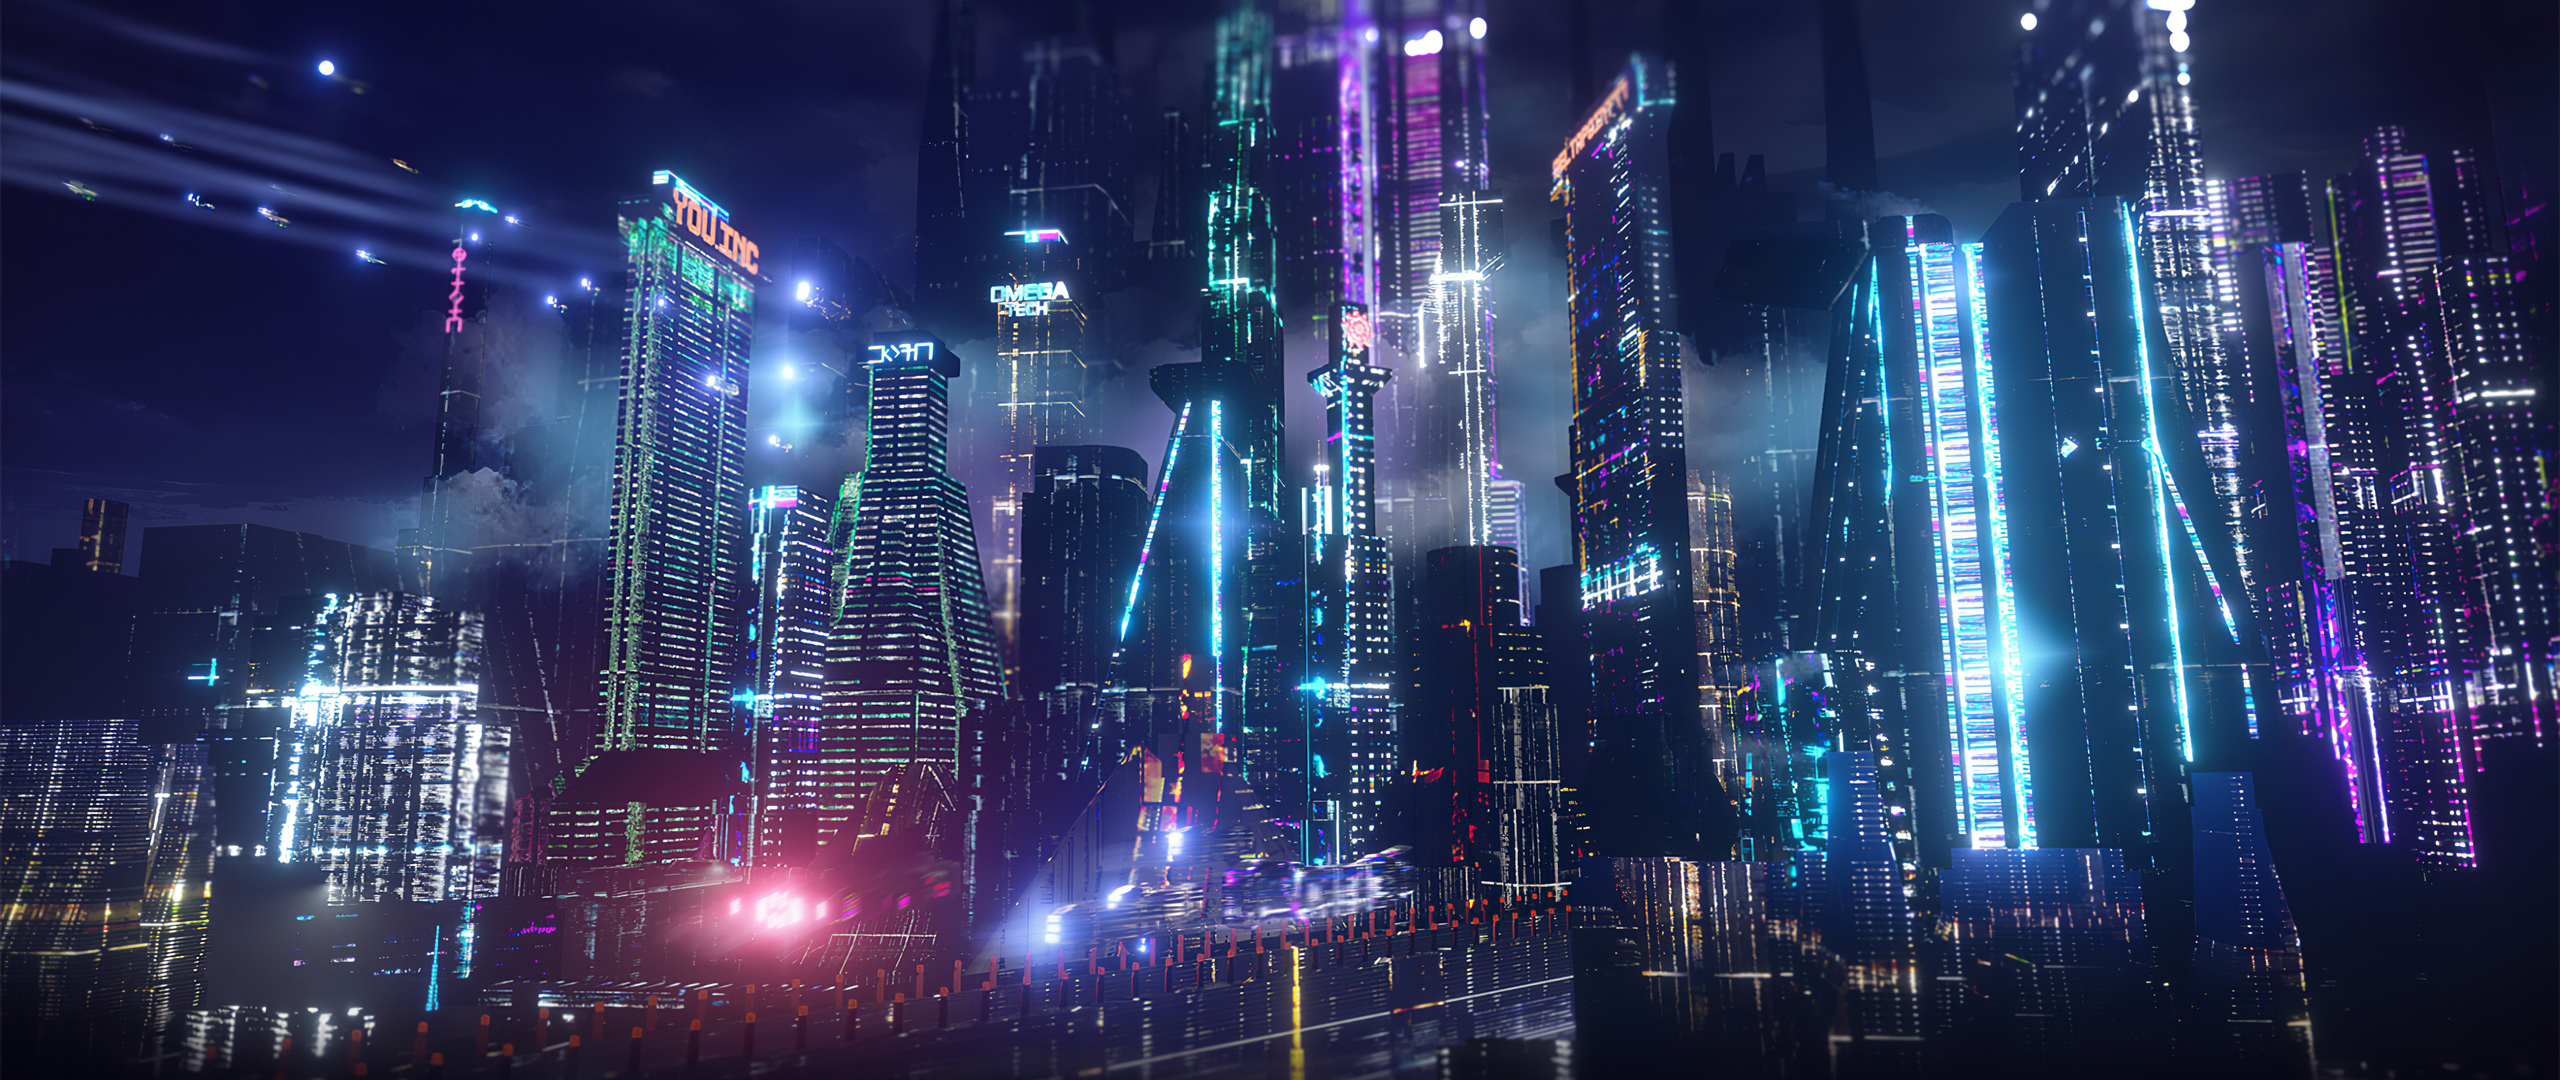 neon-city-lights-4k-u3.jpg